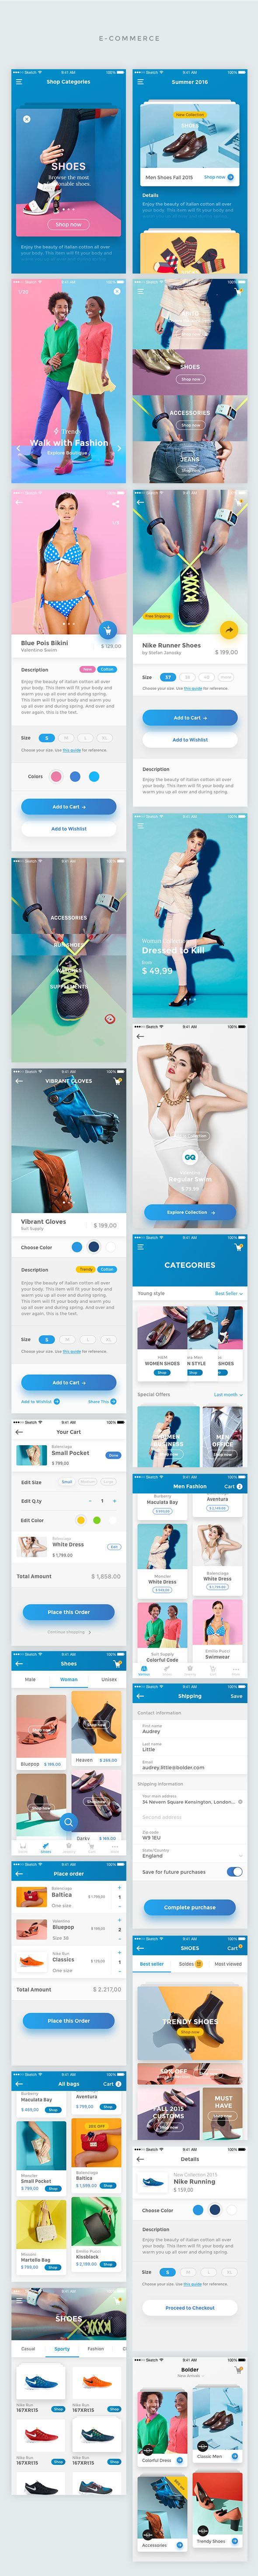 Bolder – Multipurpose Mobile UI KIT for Sketch